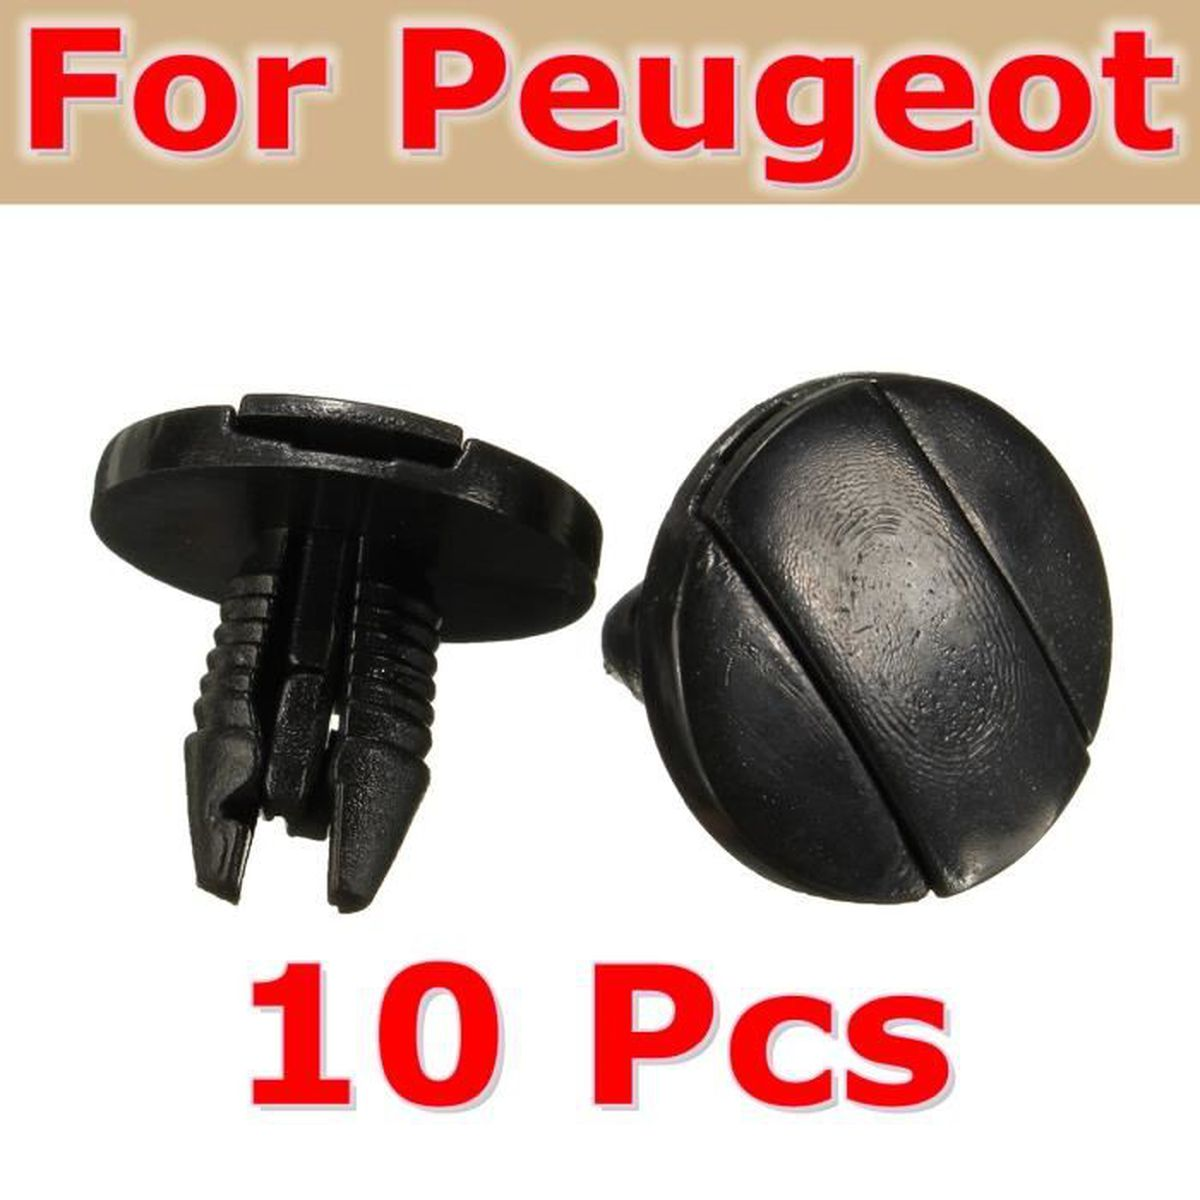 neufu lot de 10pcs pare boue rivet attaches fixation pinces pour peugeot 207 307 206 sw cc. Black Bedroom Furniture Sets. Home Design Ideas